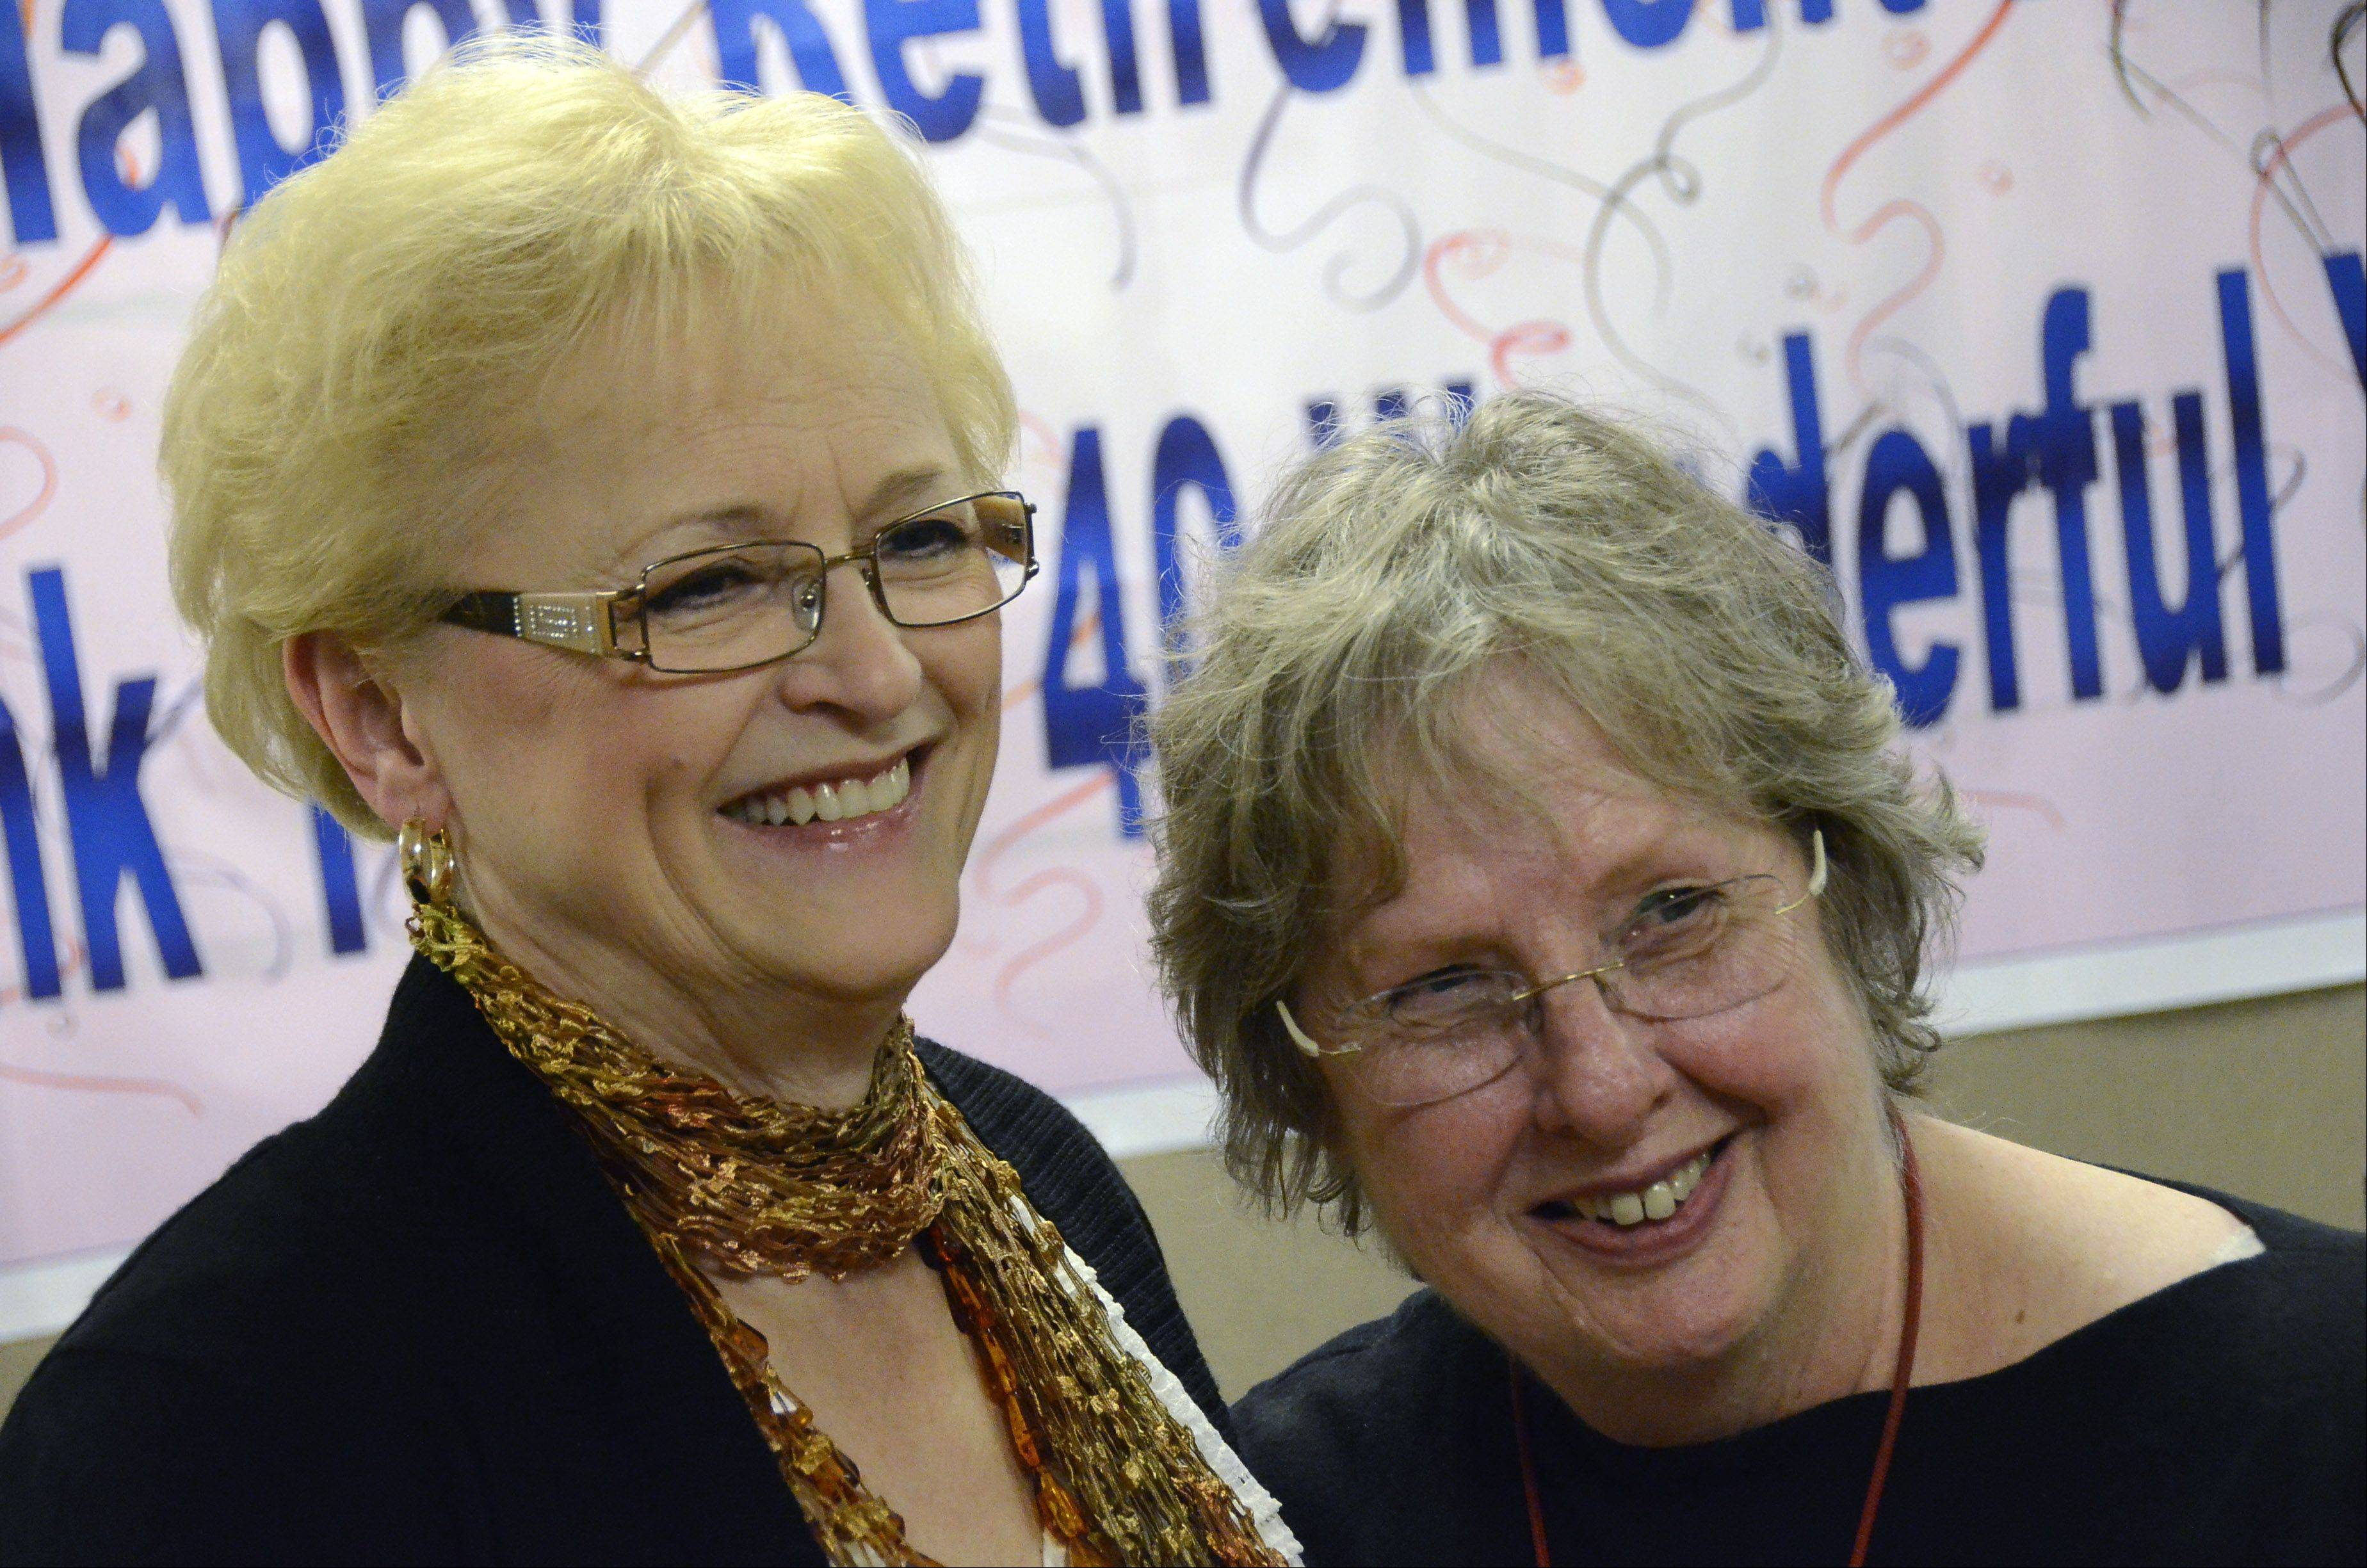 Ann Skwarek, left, of Prospect Heights is retiring after working as a nurse in the neonatal intensive care unit at Advocate Lutheran General Hospital for 40 years. Wishing her well is another 40-year veteran, Cora Reidl of Chicago.